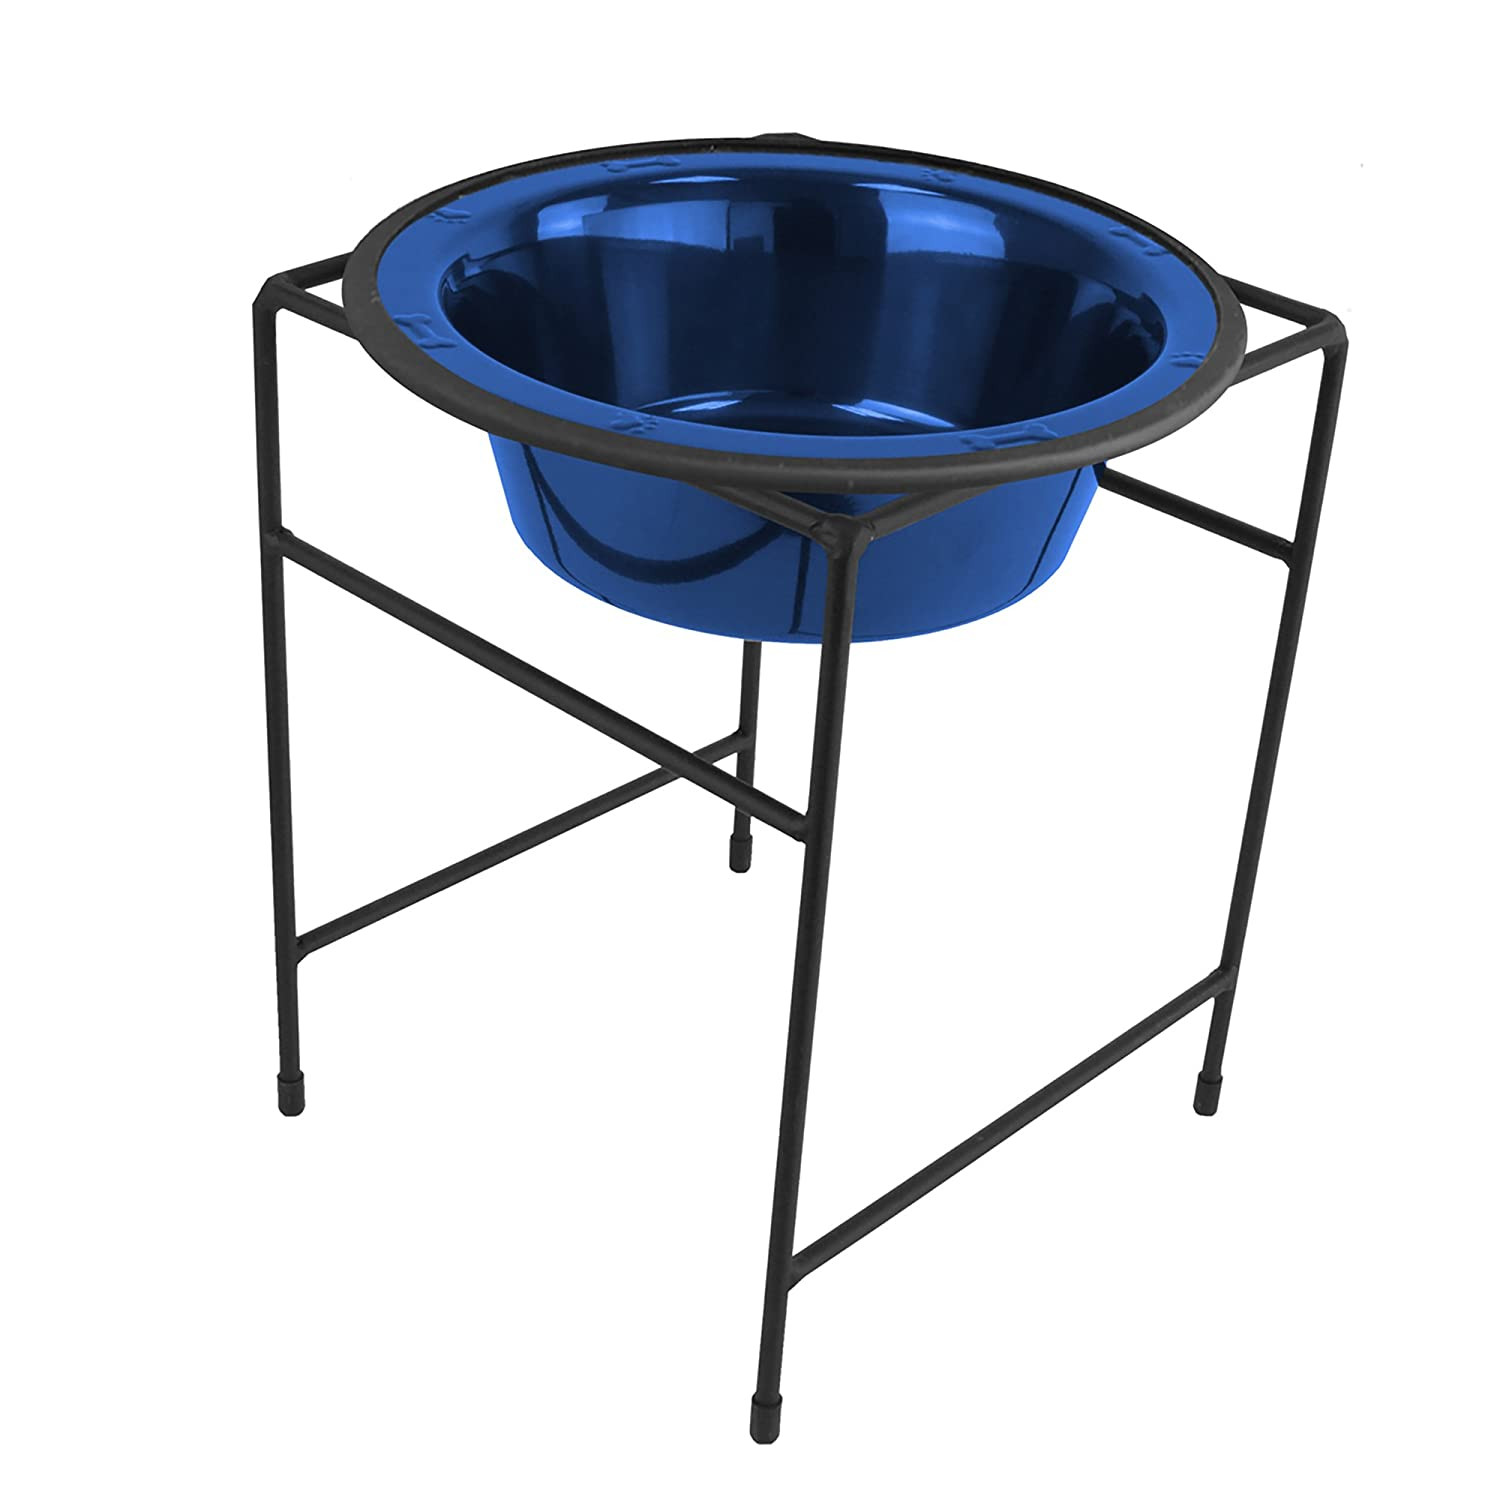 bluee Platinum Pets Modern Single Diner Stand with 54Ounce Rimmed Bowl, Raspberry